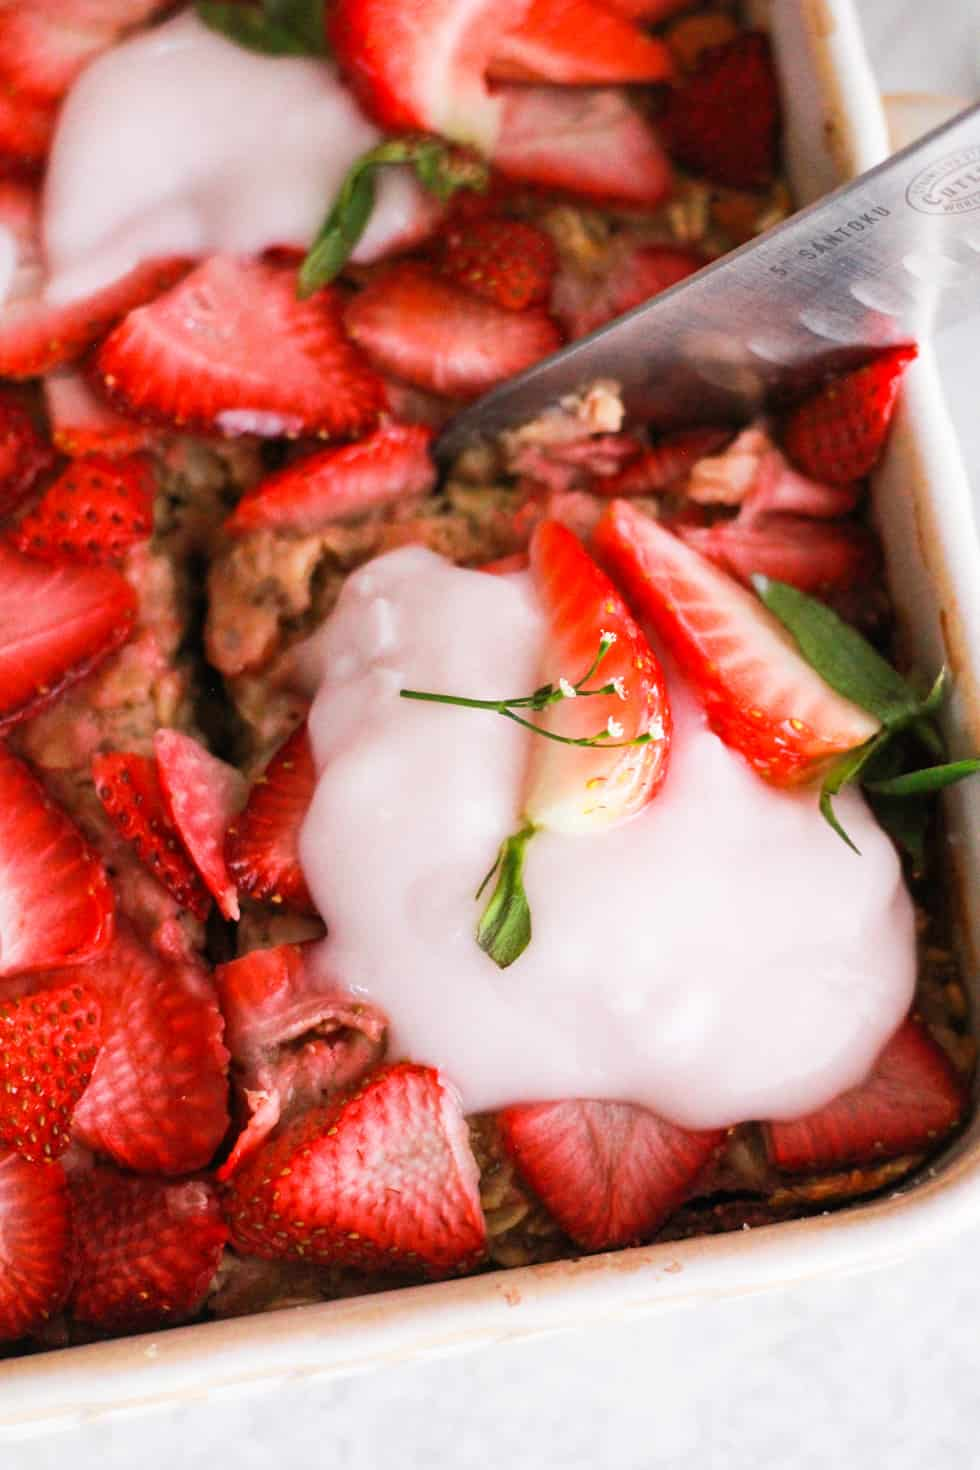 Closeup shot of knife cutting into strawberry baked oatmeal.